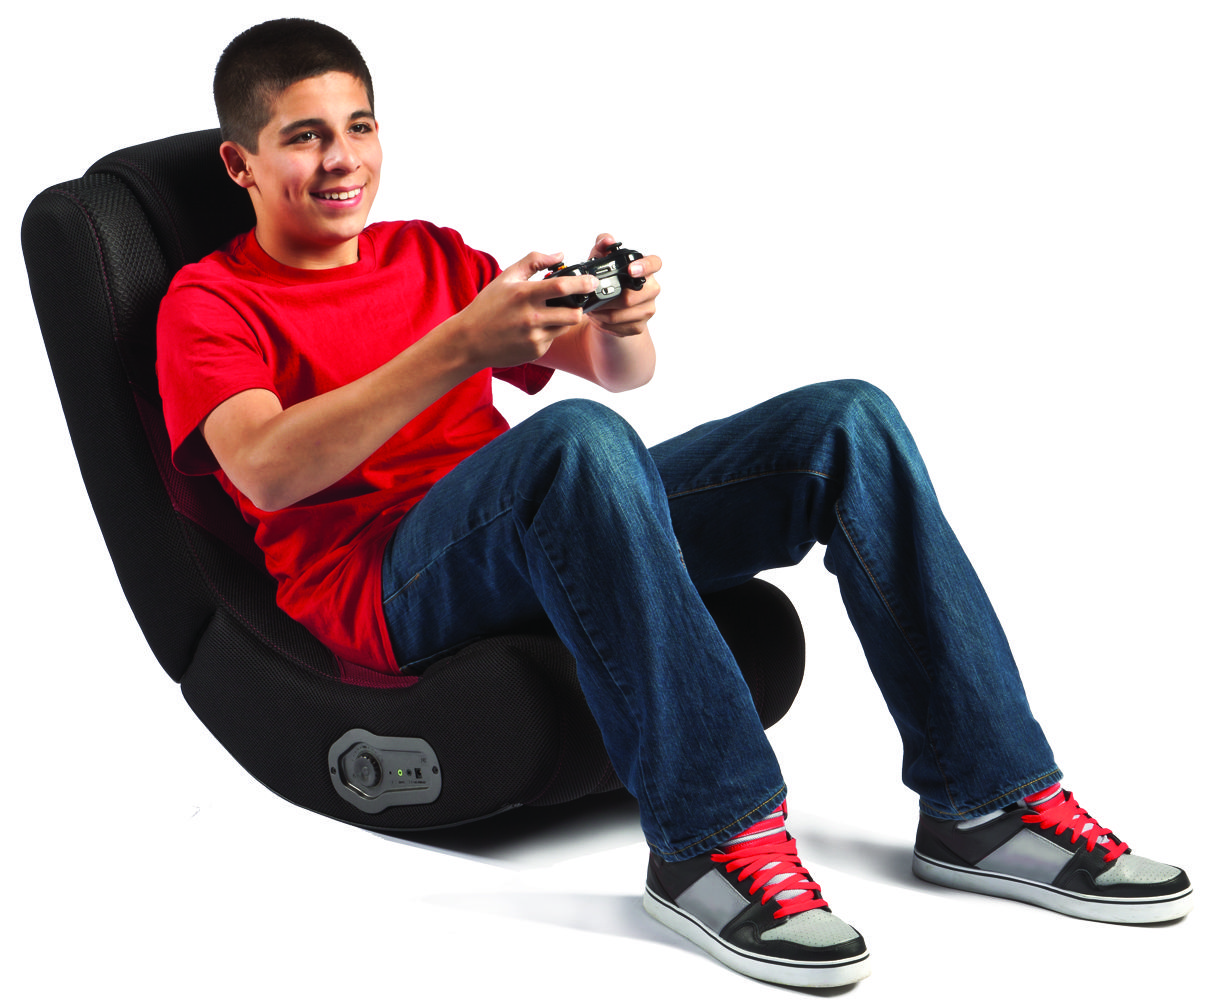 toys r us rocking chair canada bird cage red curve rocker gaming available at staples